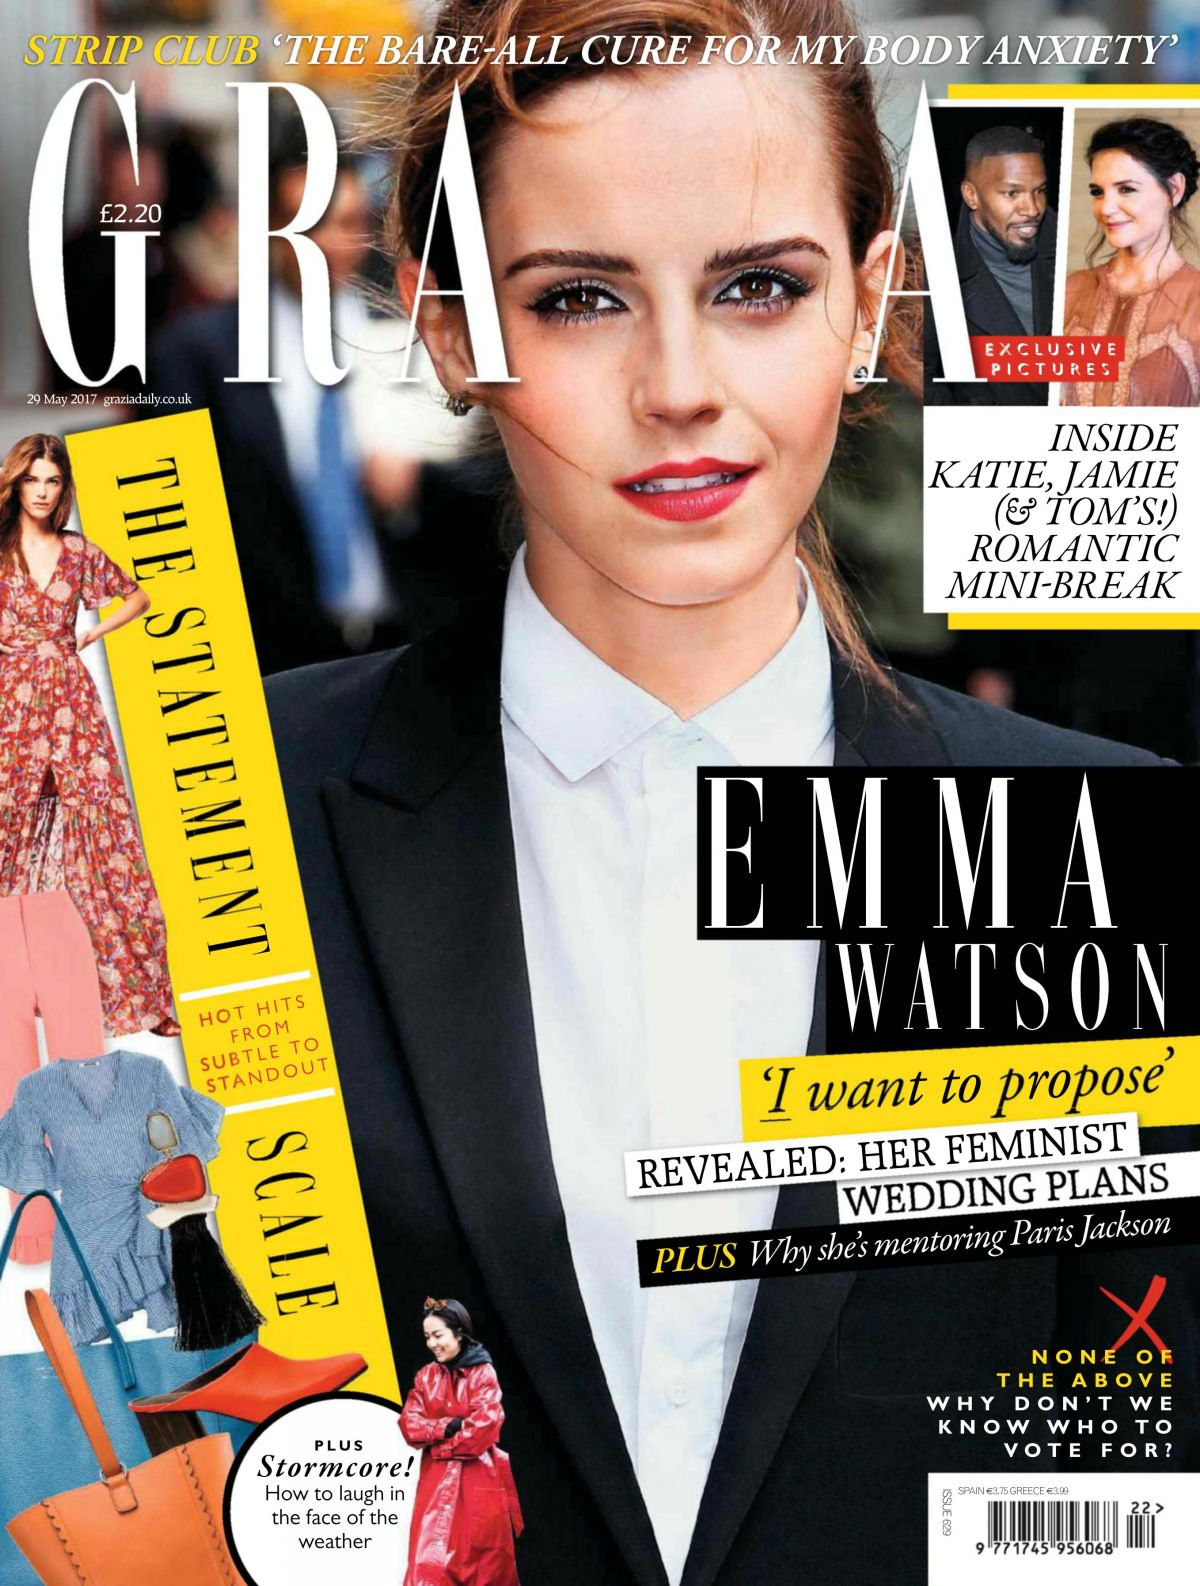 EMMA WATSON in Grazia Magazine, May 2017